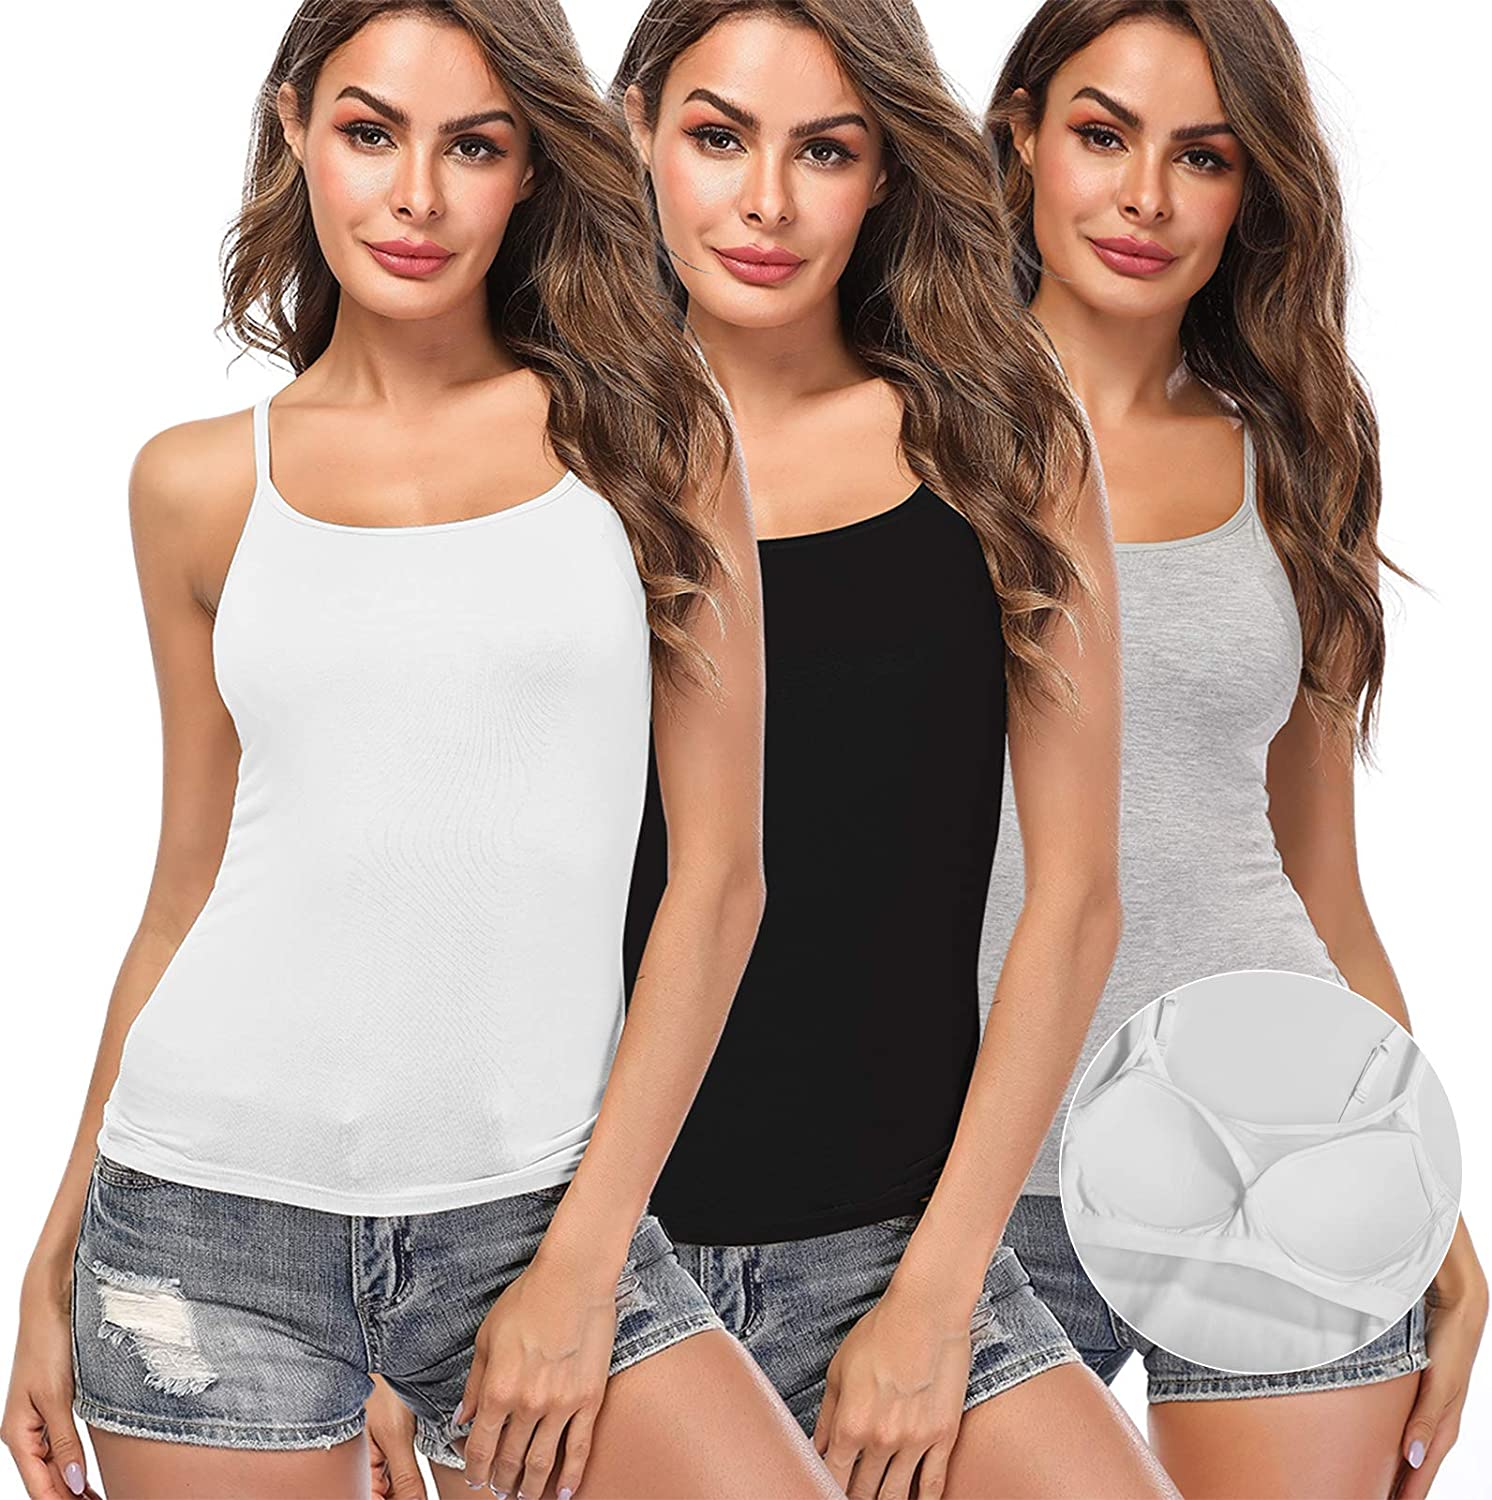 Women Camisole with Built-in Bra Cup Strap Supportive Padded Tank Top Layering Cami Undershirt for Yoga